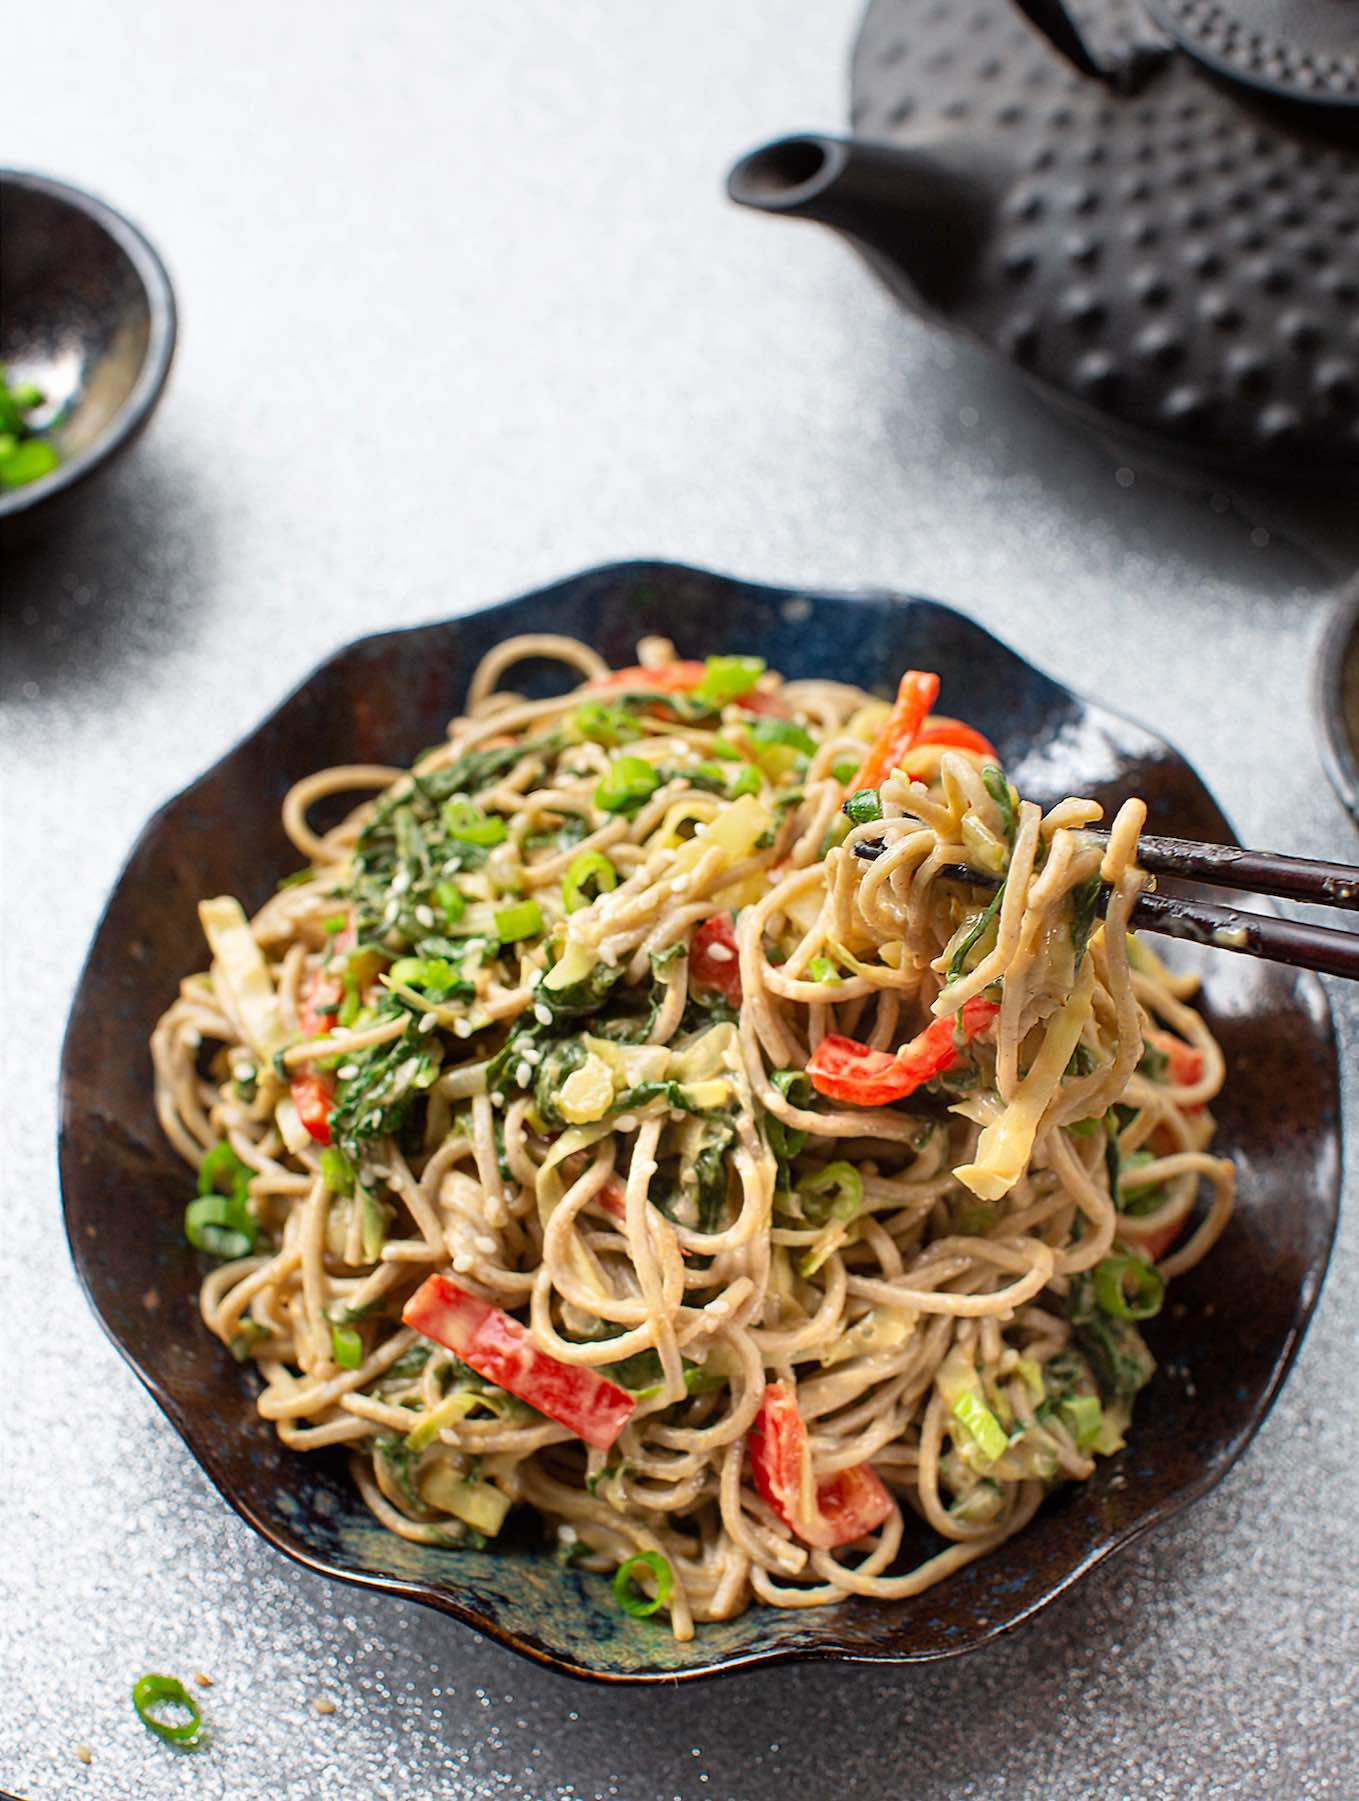 Vean Soba noodles with leafy greens - collards or kale